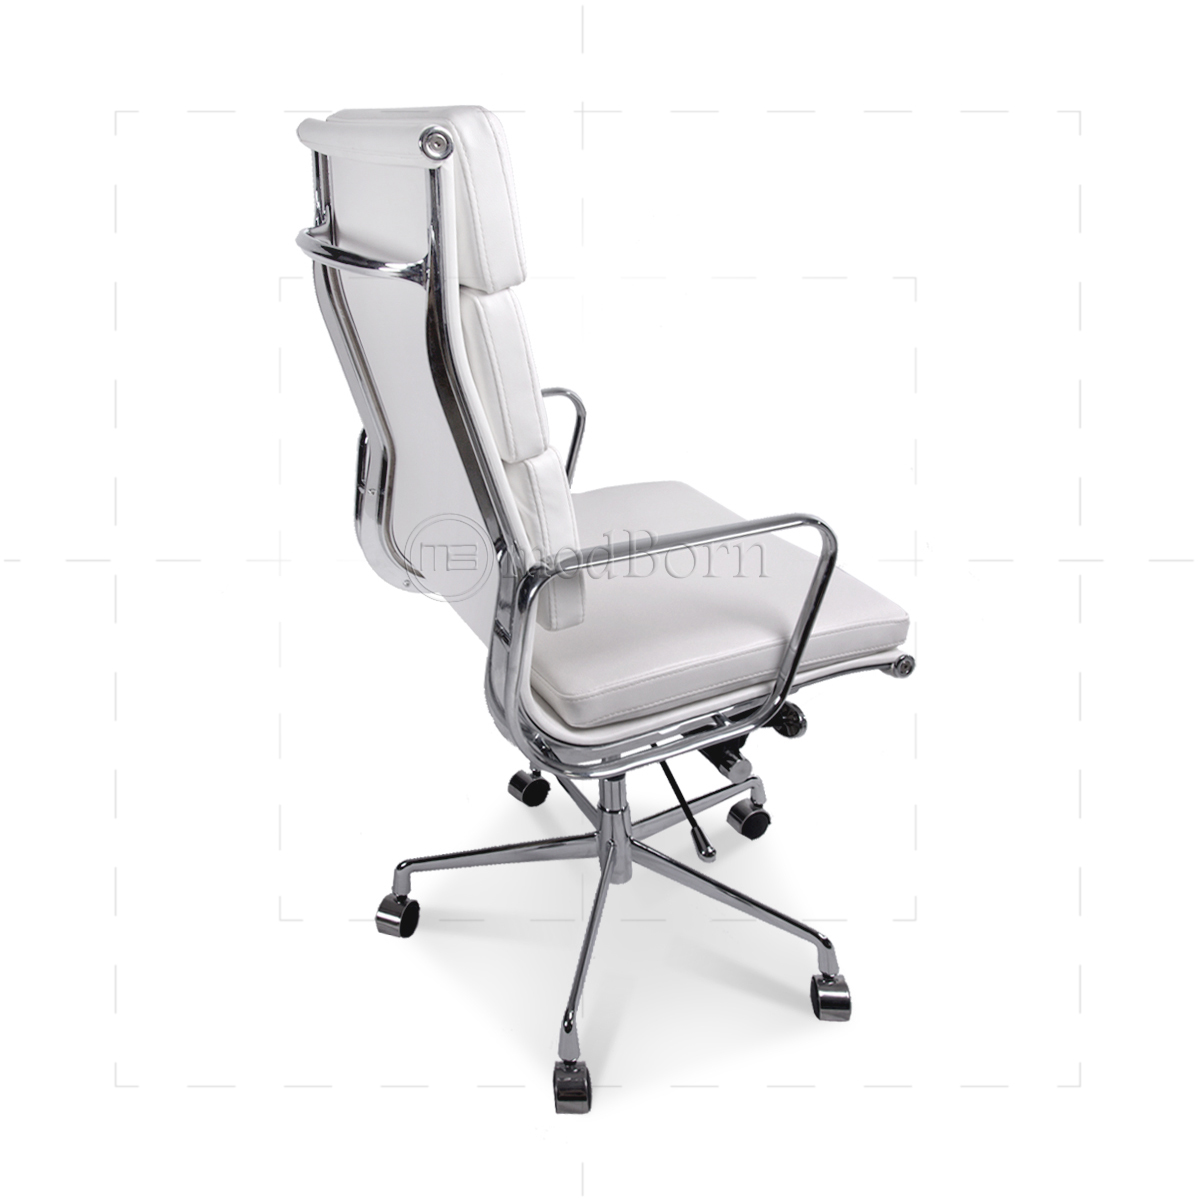 Ea219 eames style office chair high back soft pad white for Desk chair white leather